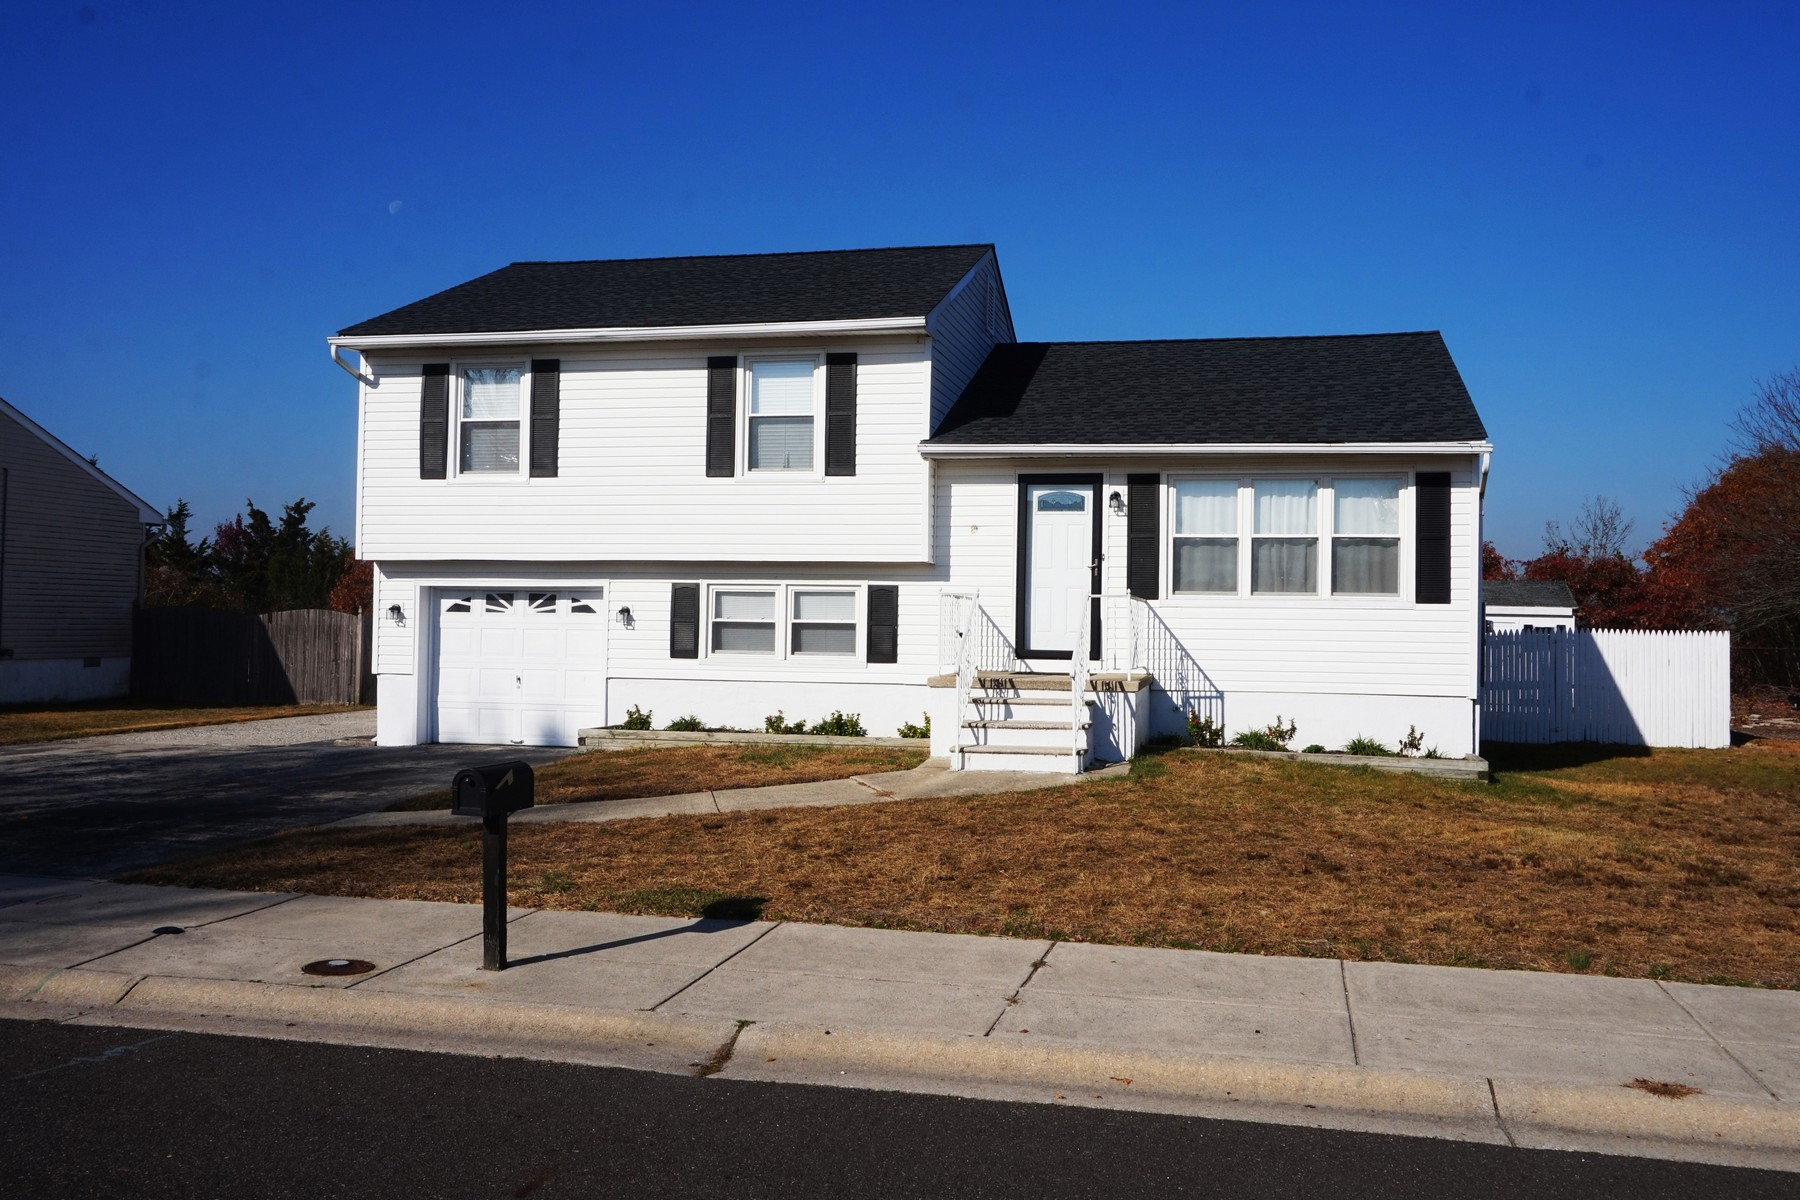 独户住宅 为 销售 在 Move In Ready 55 Bucknell Road Somers Point, 08244 美国